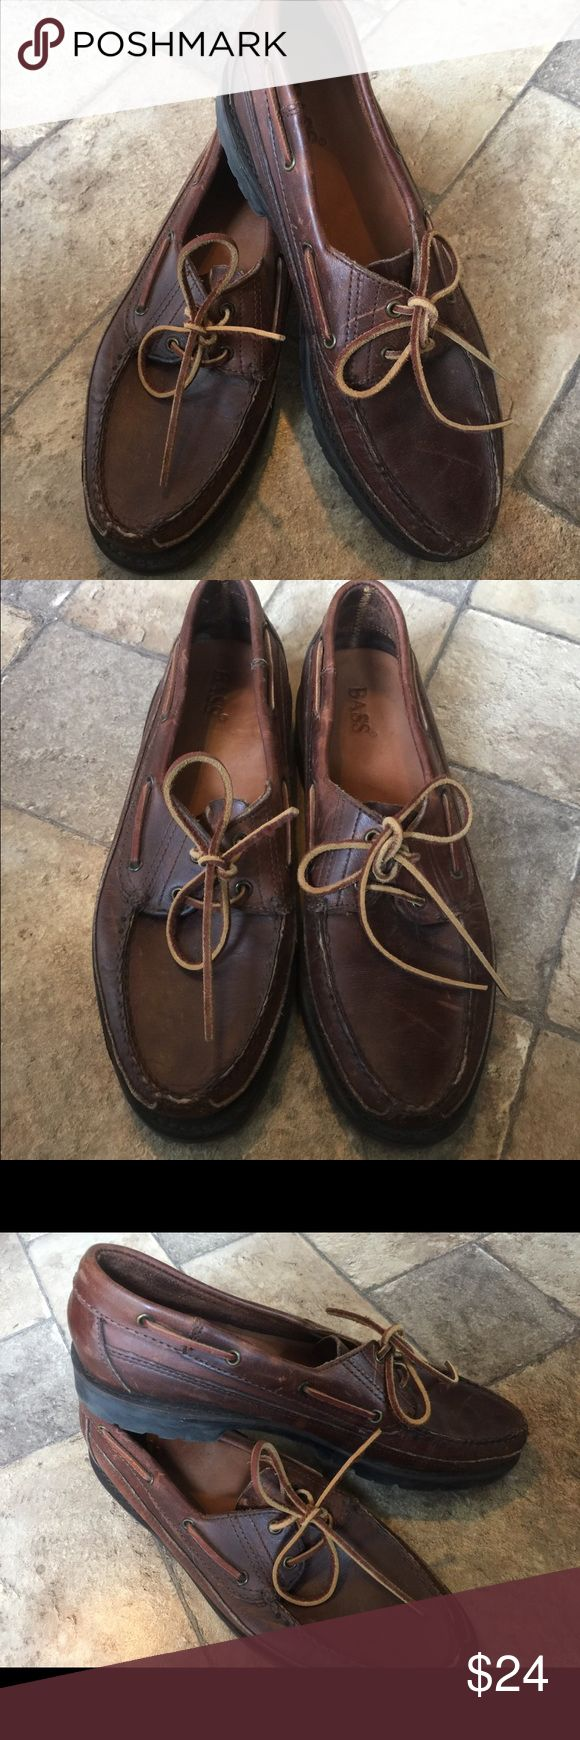 Men's Boat Shoes Leather Nice leather Boat shoes by Bass,Sz 10.5.Nice condition,worn a few times. Bass Shoes Boat Shoes